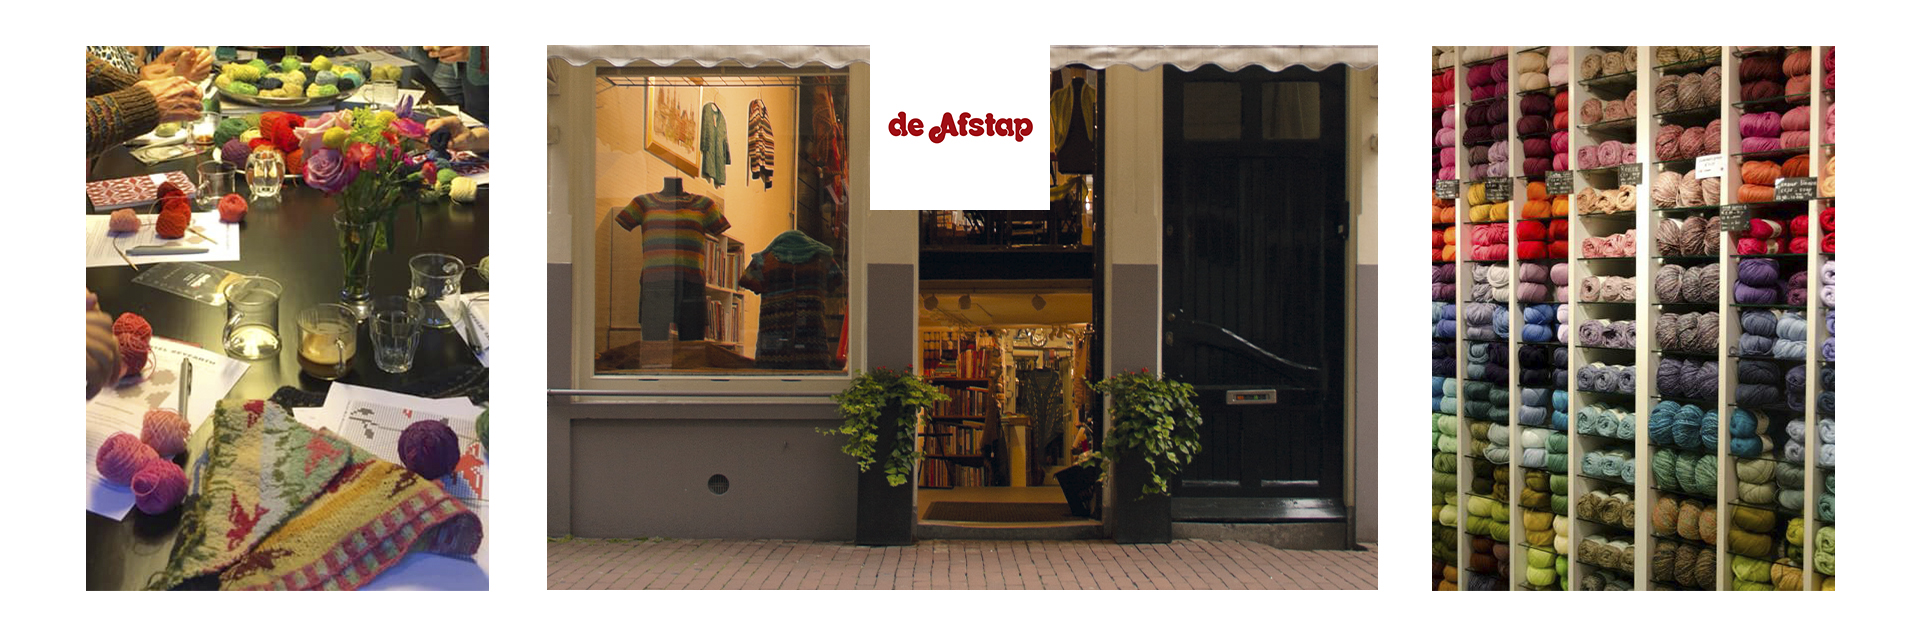 The Afstap in the center of Amsterdam, is the Flagship shore for the British Rowan Yarns. We offer crafters a wide range of products for knitting, embroidery and other textile crafts in the shop and webshop. With many activities like workshops and courses, the shop is a well-known meeting point for Dutch crafters, as well as crafters from all over the world.